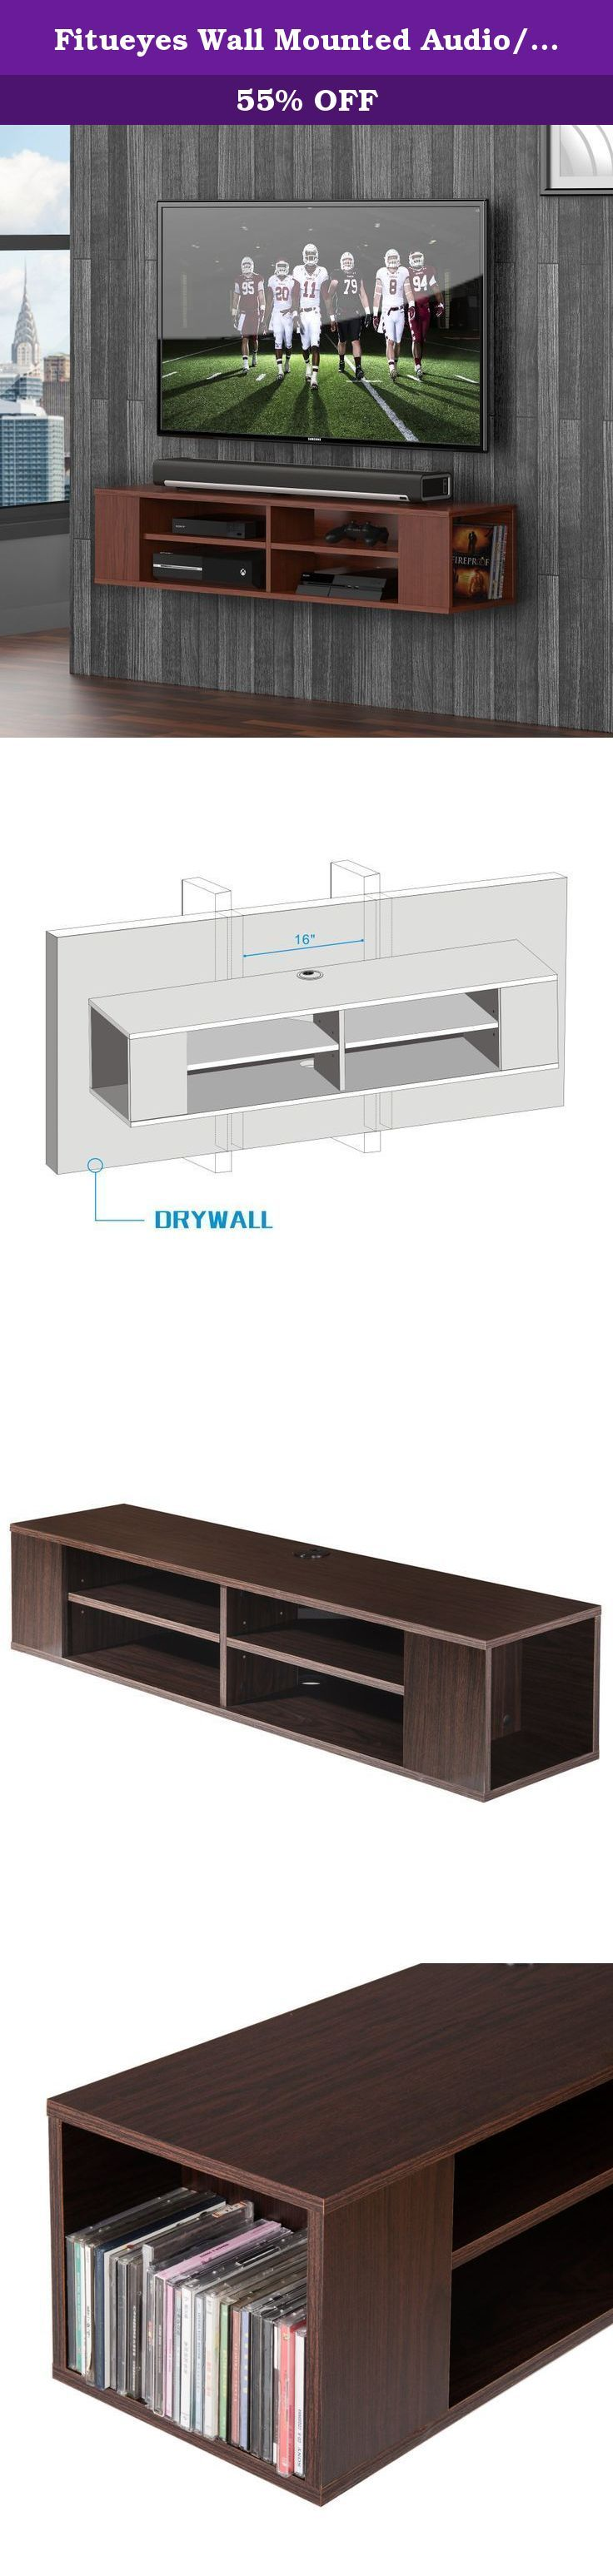 Fitueyes Wall Mounted Audio/Video Console wood grain for xbox one /PS4/ vizio/ Sumsung/sony TV DS212001WB-G. Give any room a dash of modern style with our Fitueyes Wall Mounted Audio/Video Console. Finished in goes-with-everything Walnut, this sleek yet functional console offers two generous storage compartments. The main shelf is 48-inch length, providing ample space for your cable box, DVR or other media components.Cables are neatly concealed to give the console a professional…